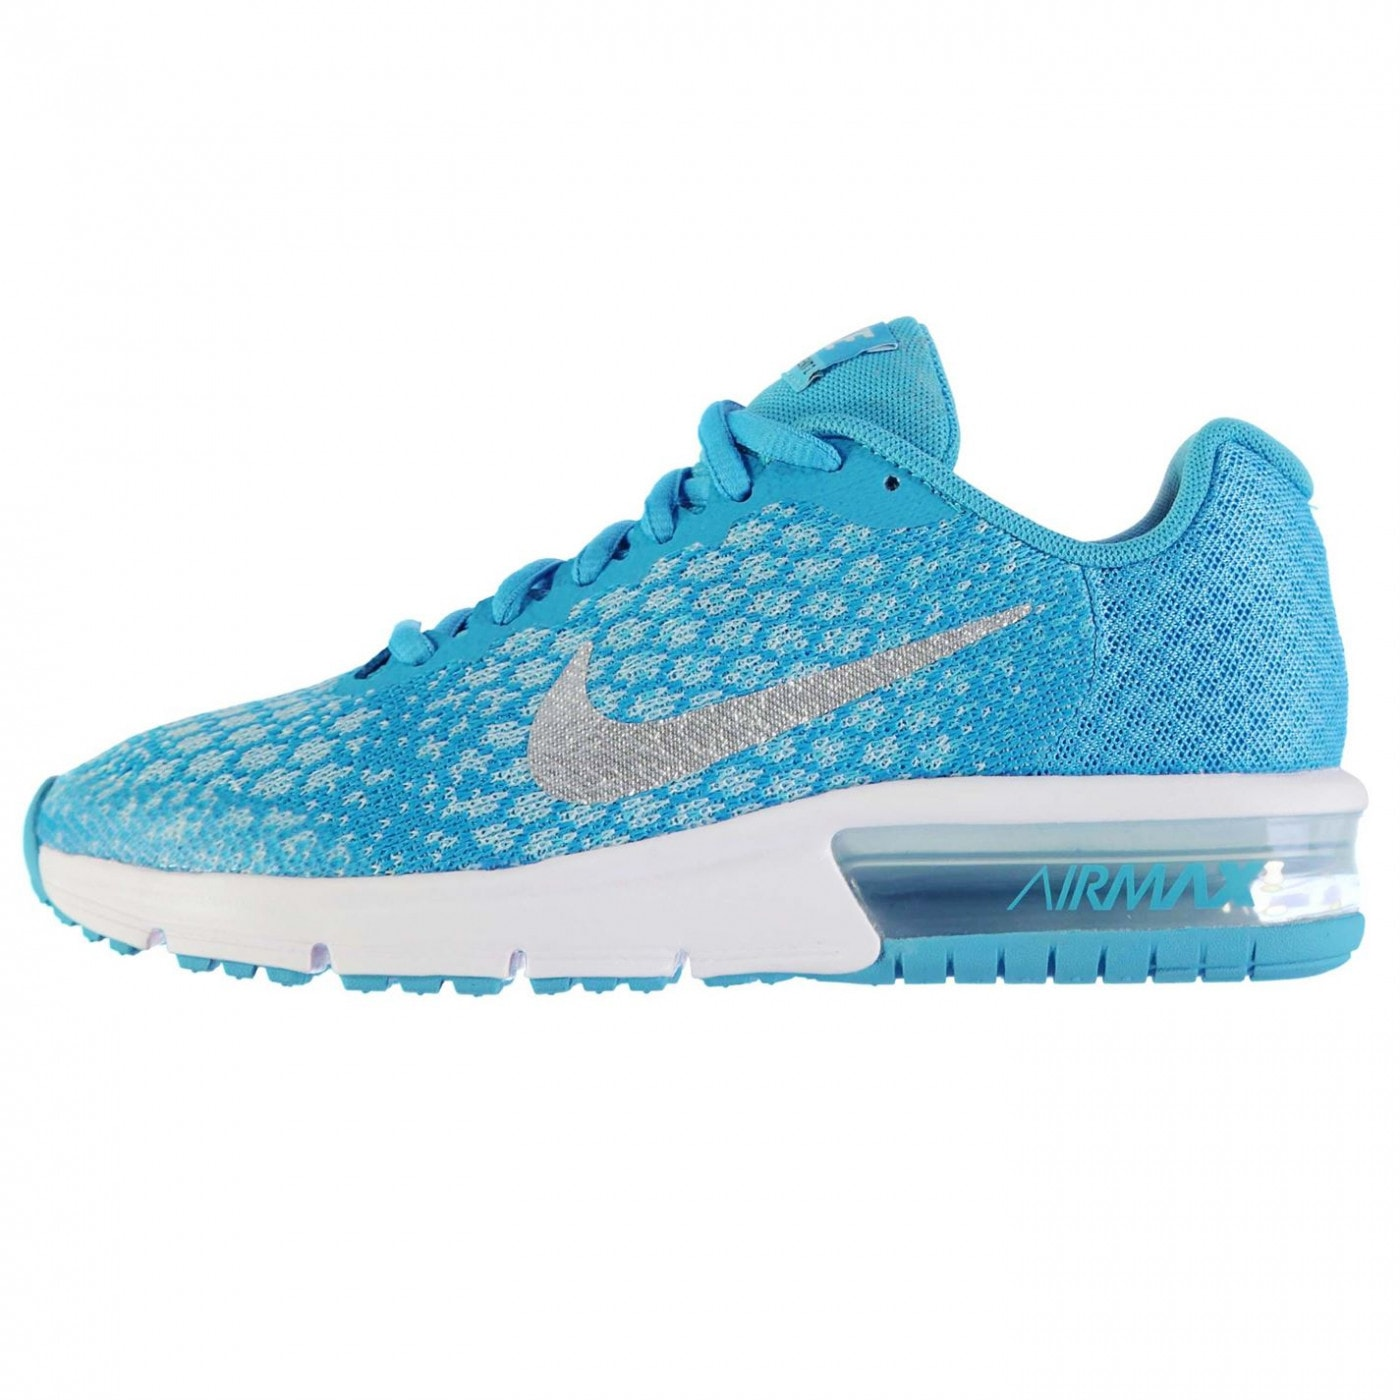 4741b3a784 Nike Air Max Sequent 2 Trainers Junior Girls - FACTCOOL